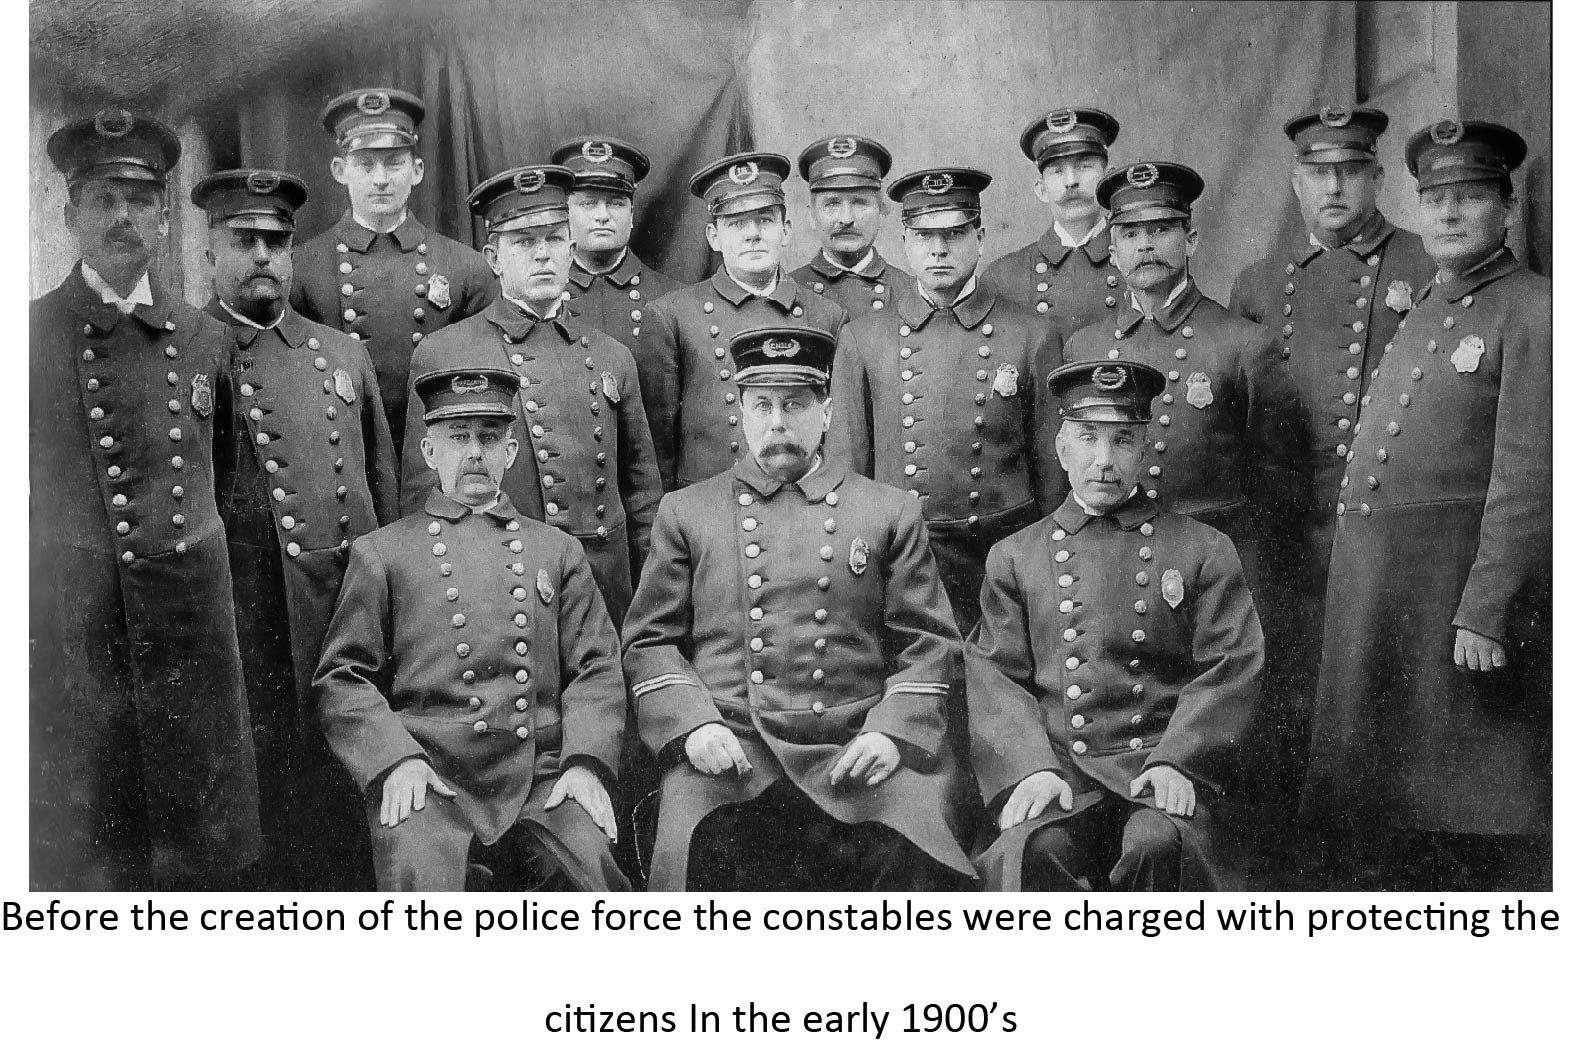 Constables early 1900s